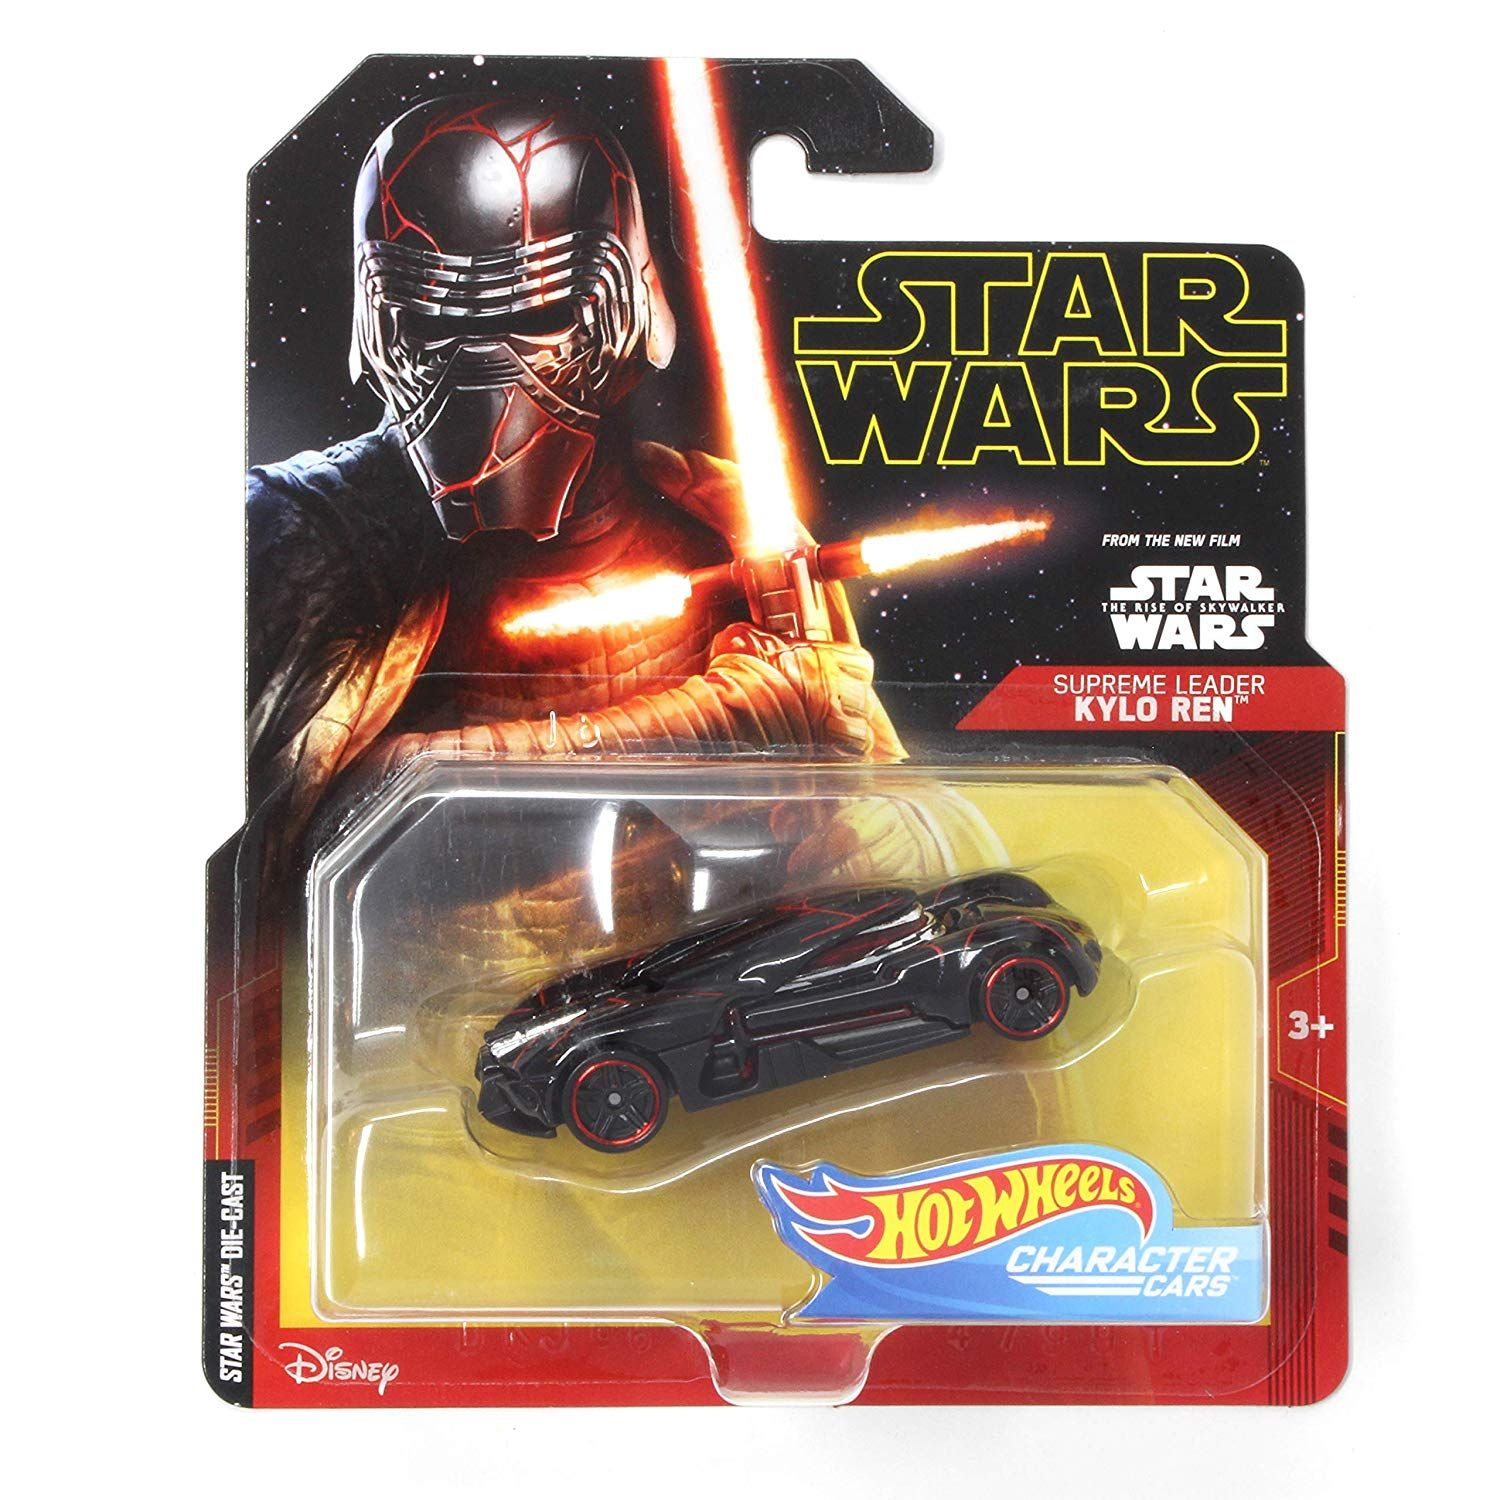 Hot Wheels Character Cars Zu Star Wars The Rise Of Skywalker Erste Offizielle Bilder In 2020 With Images Star Wars Collectors Star Wars Characters Star Wars